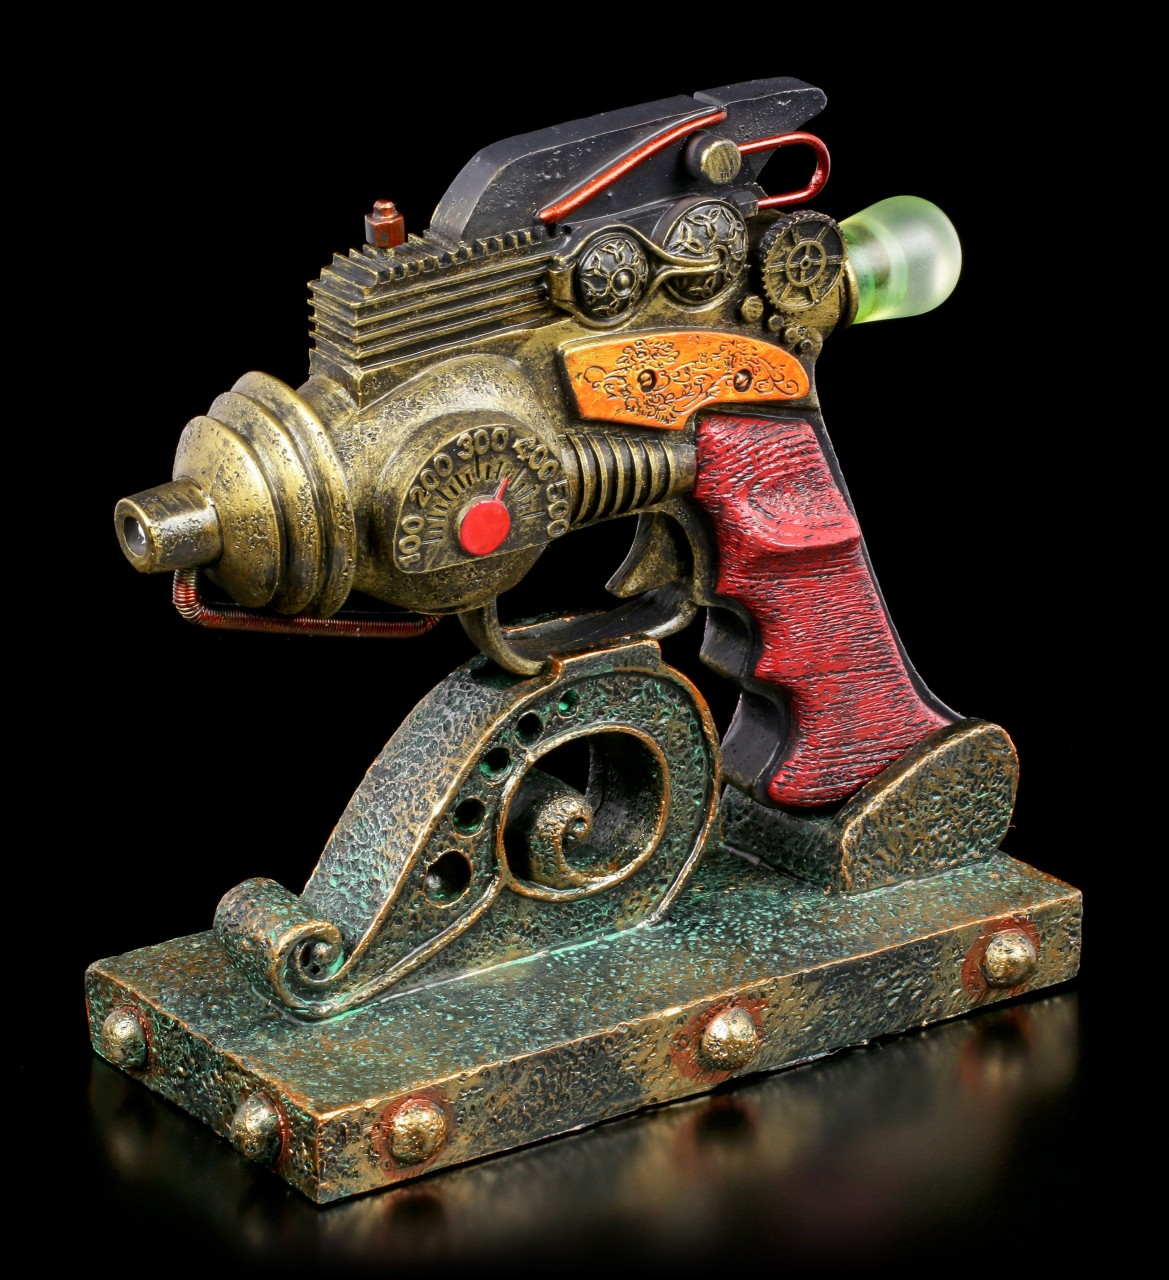 Steampunk Decoration Gun - The Consolidator